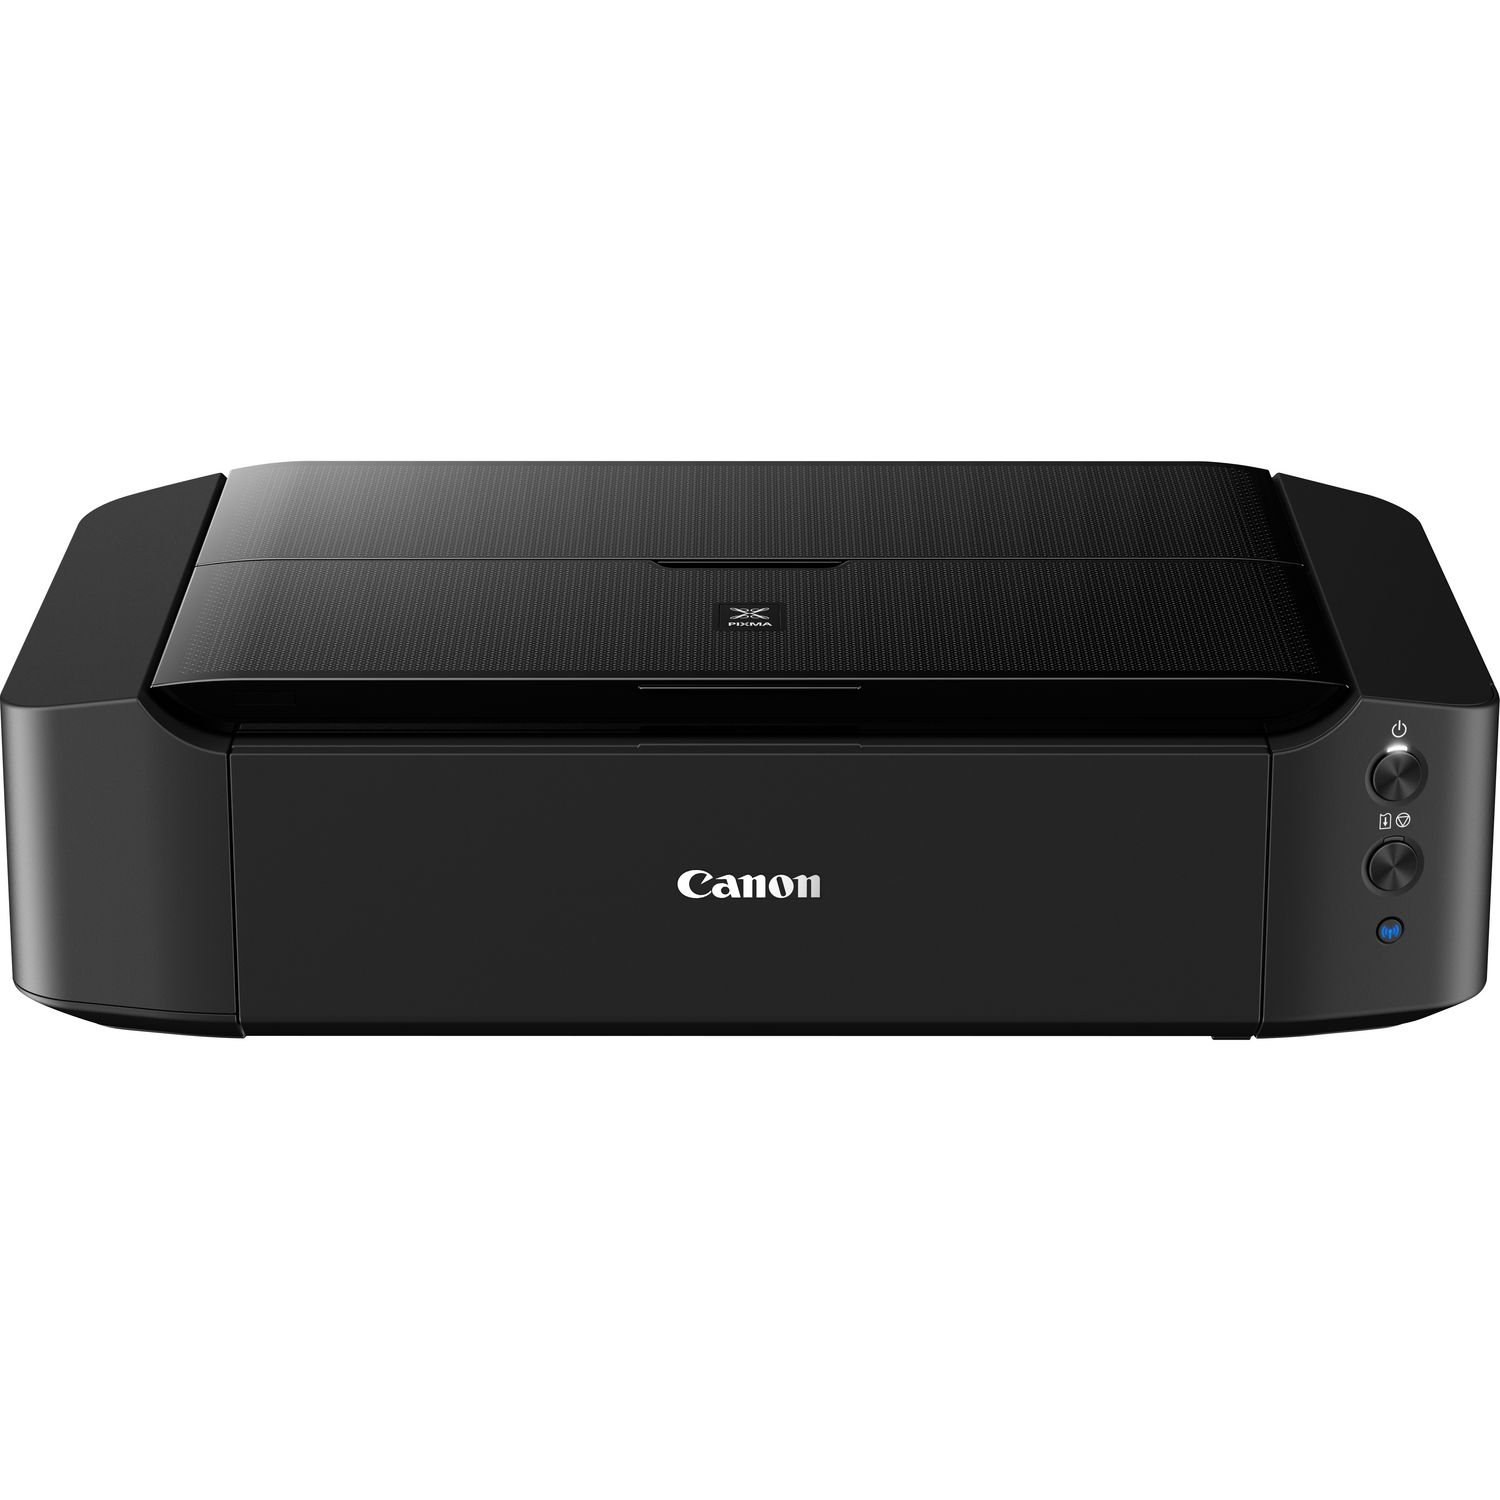 canon pixma ip8750 in wlan drucker canon deutschland shop. Black Bedroom Furniture Sets. Home Design Ideas